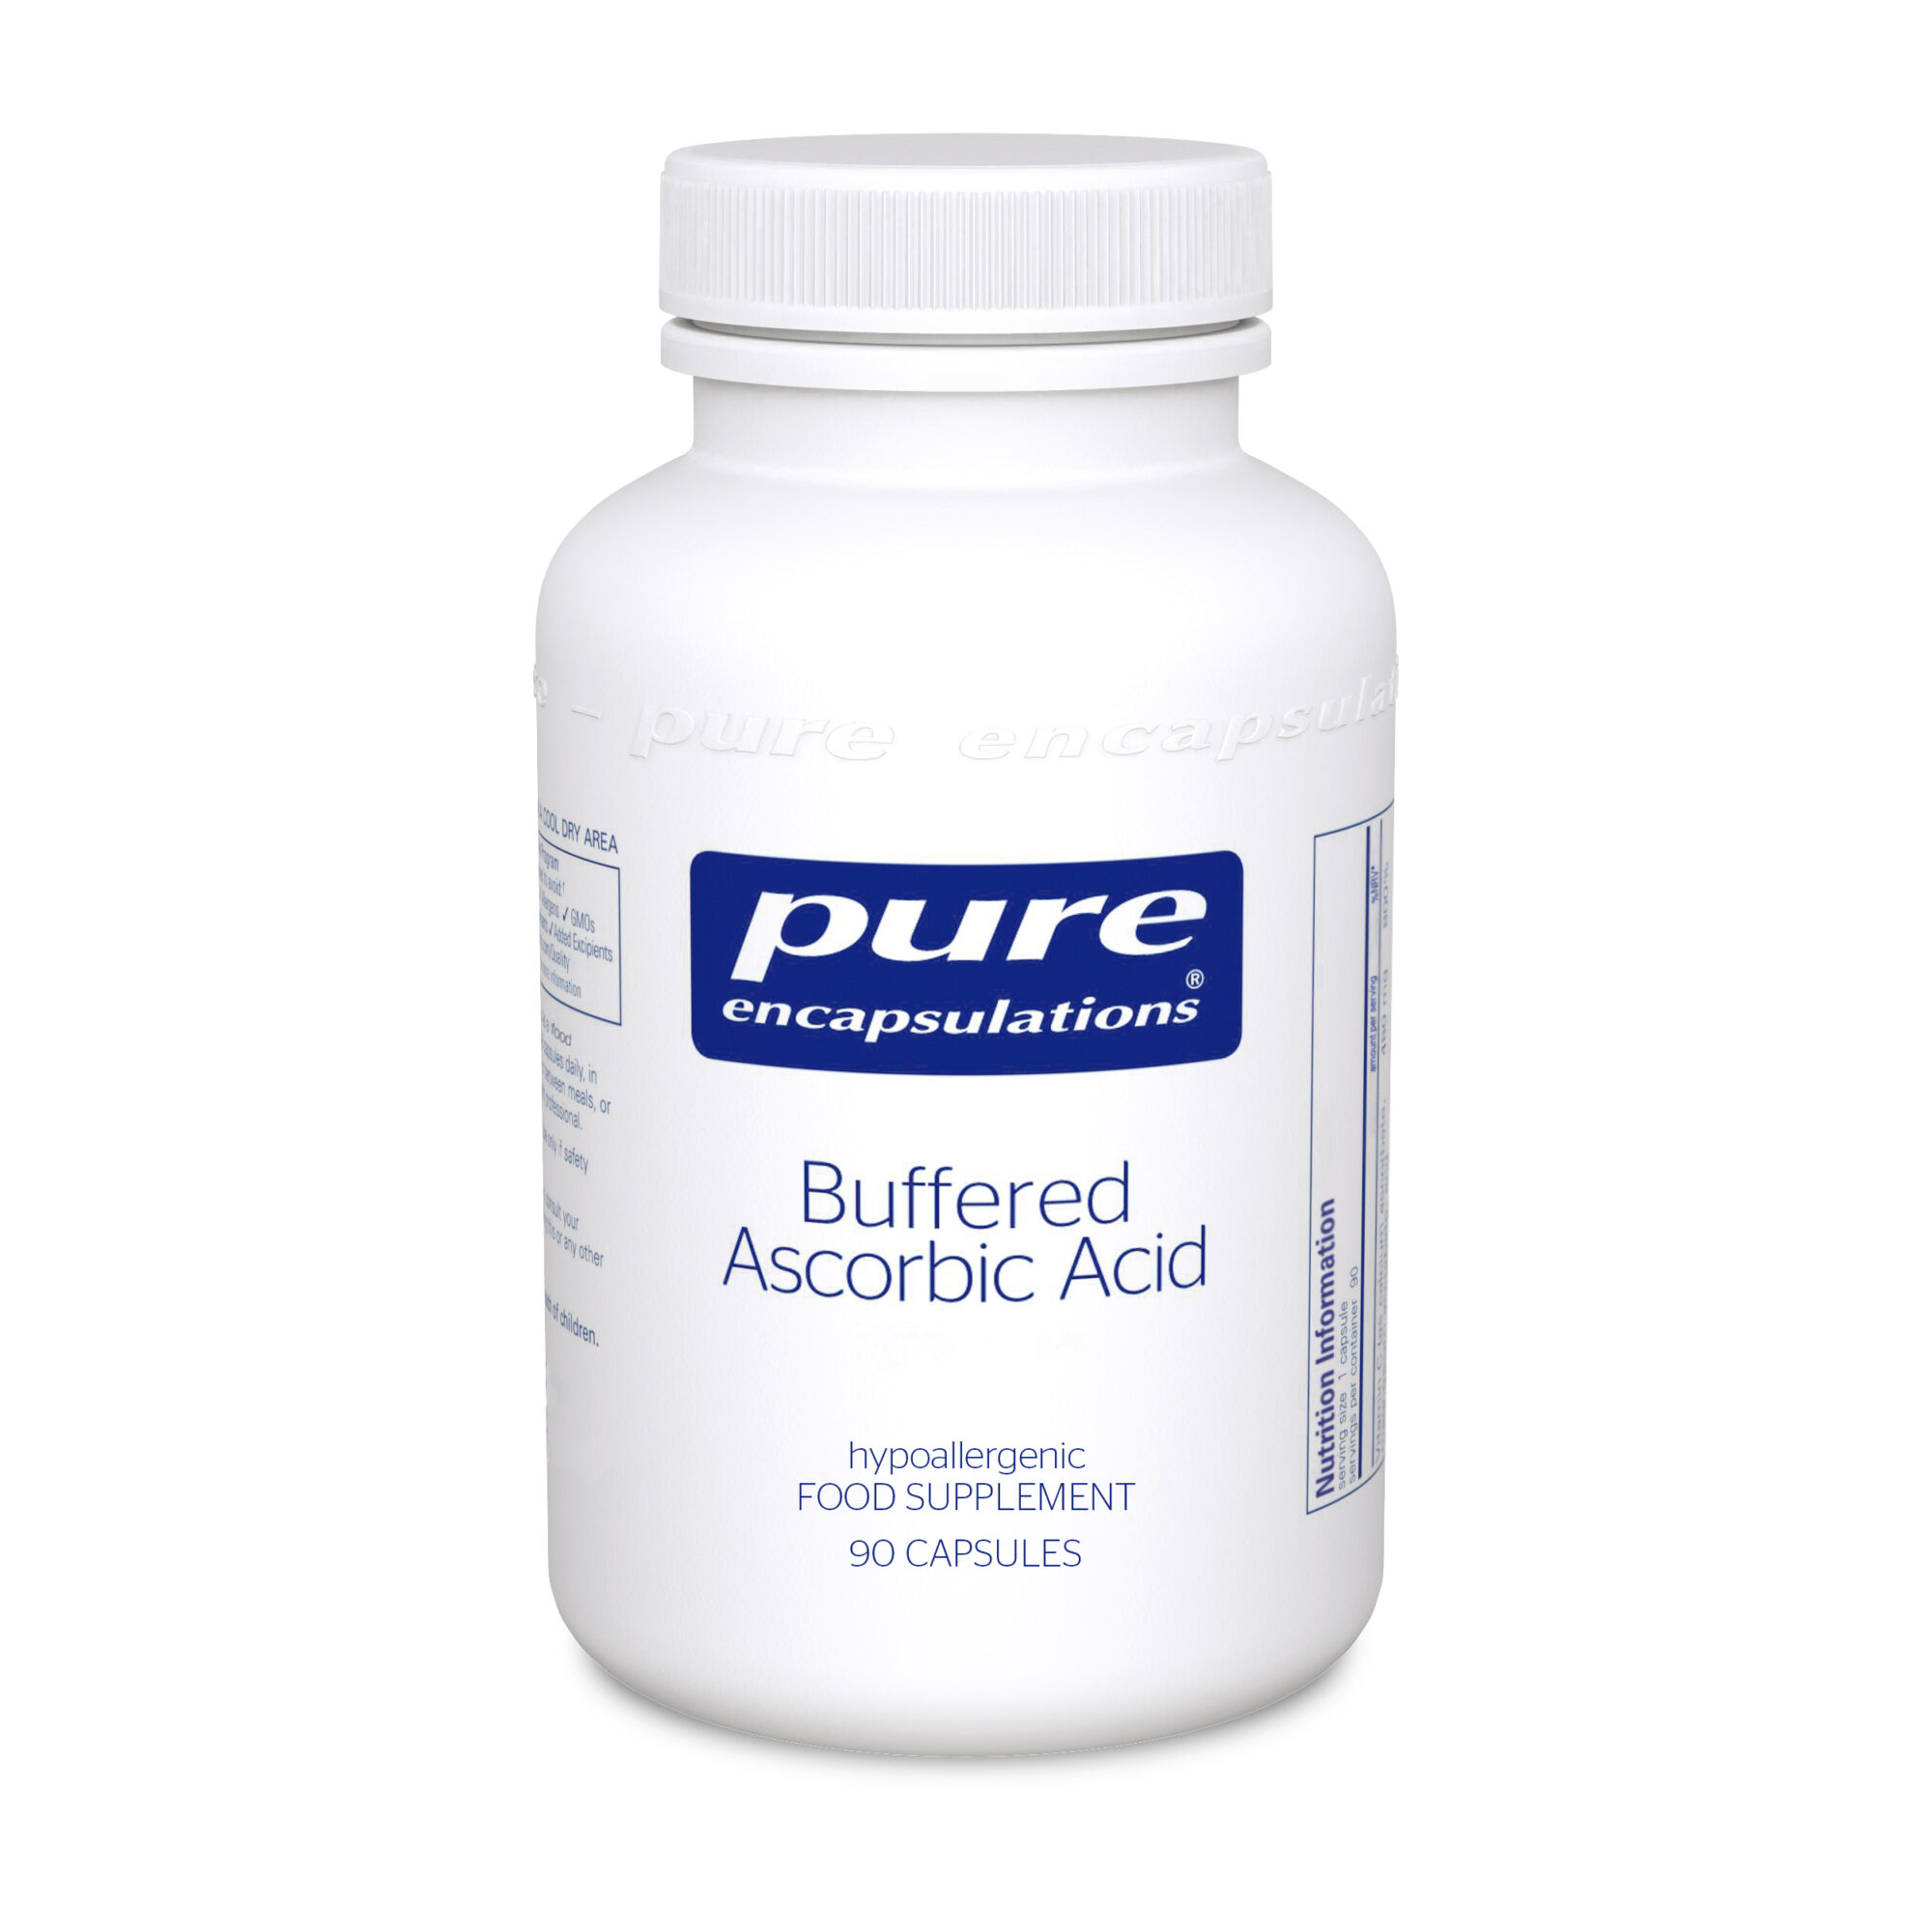 Buffered Ascorbic Acid 90caps (PureEncap)